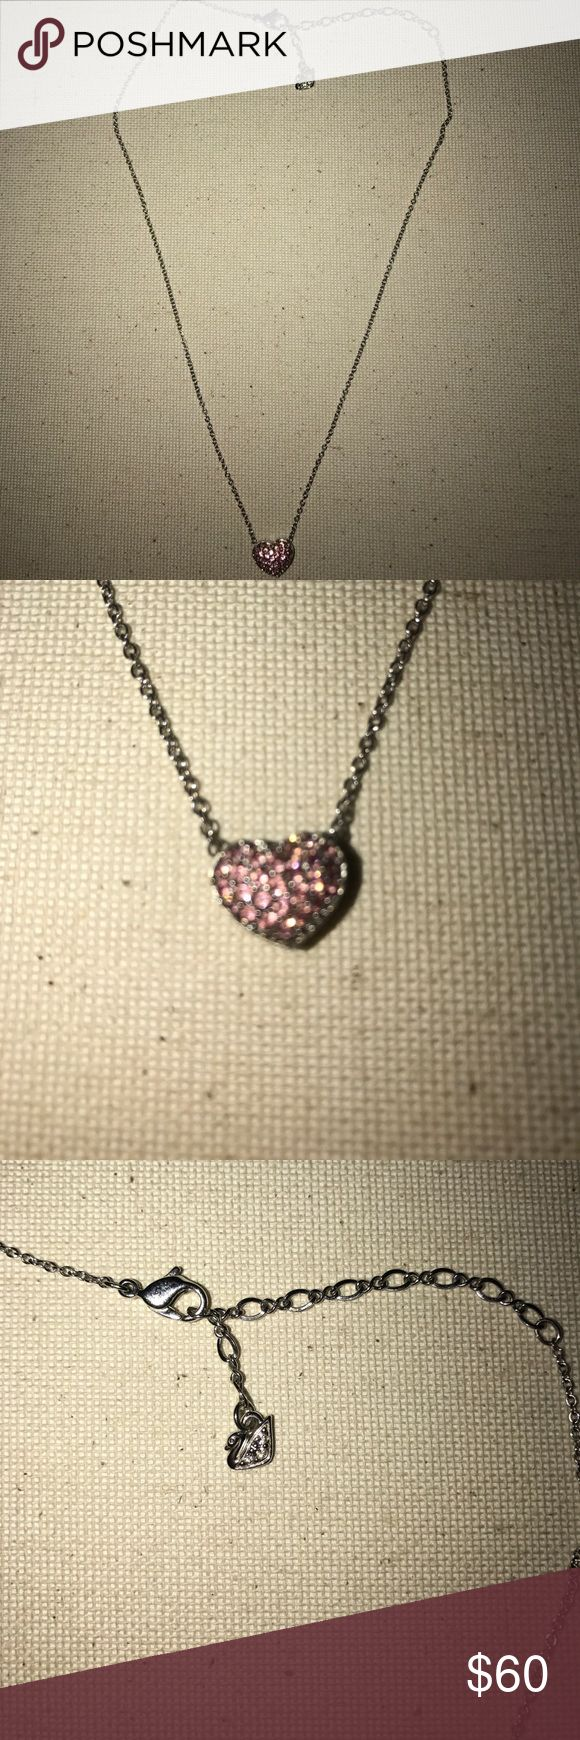 Swarovski necklace Double sided, pink crystal, heart pendant. Never worn Swarovski Swarovski Jewelry Necklaces